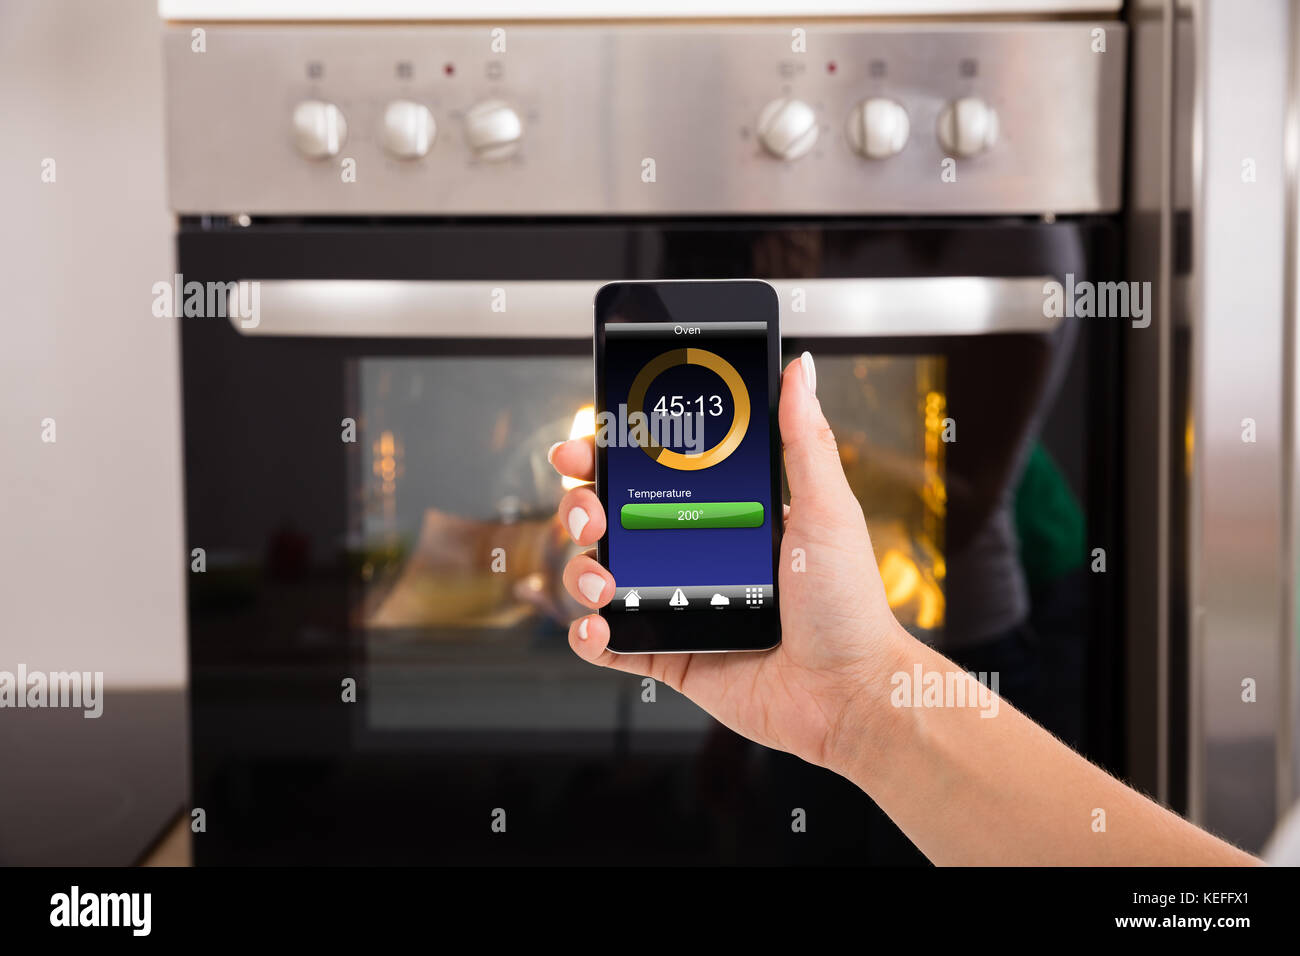 Close-up Of Person Hands Operating Oven Appliance With Mobile Phone - Stock Image